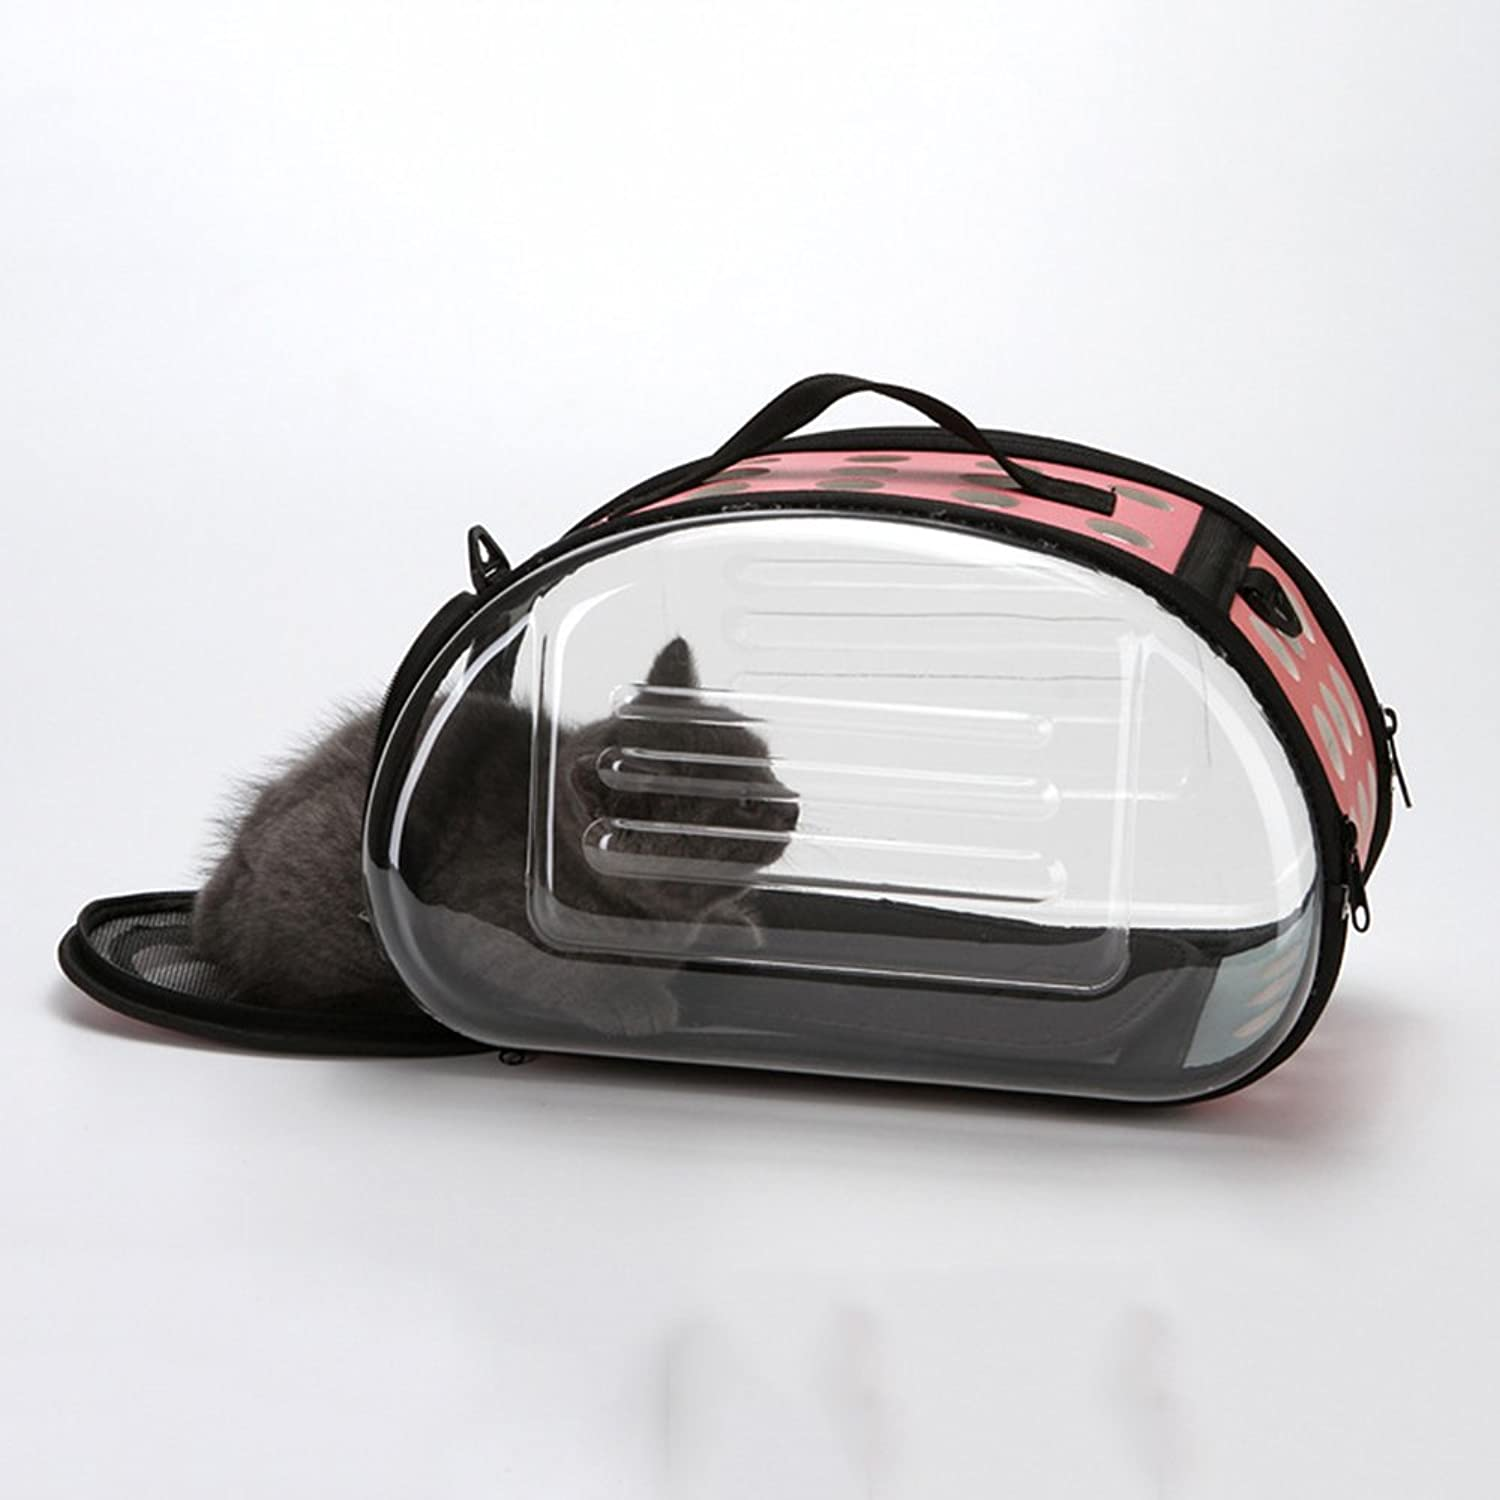 QINYL Transparent Outdoor Pet Carrier,Portable Pet Carrier Breathable Tote Bag EasyFit For Traveling Hiking Camping(Pink)